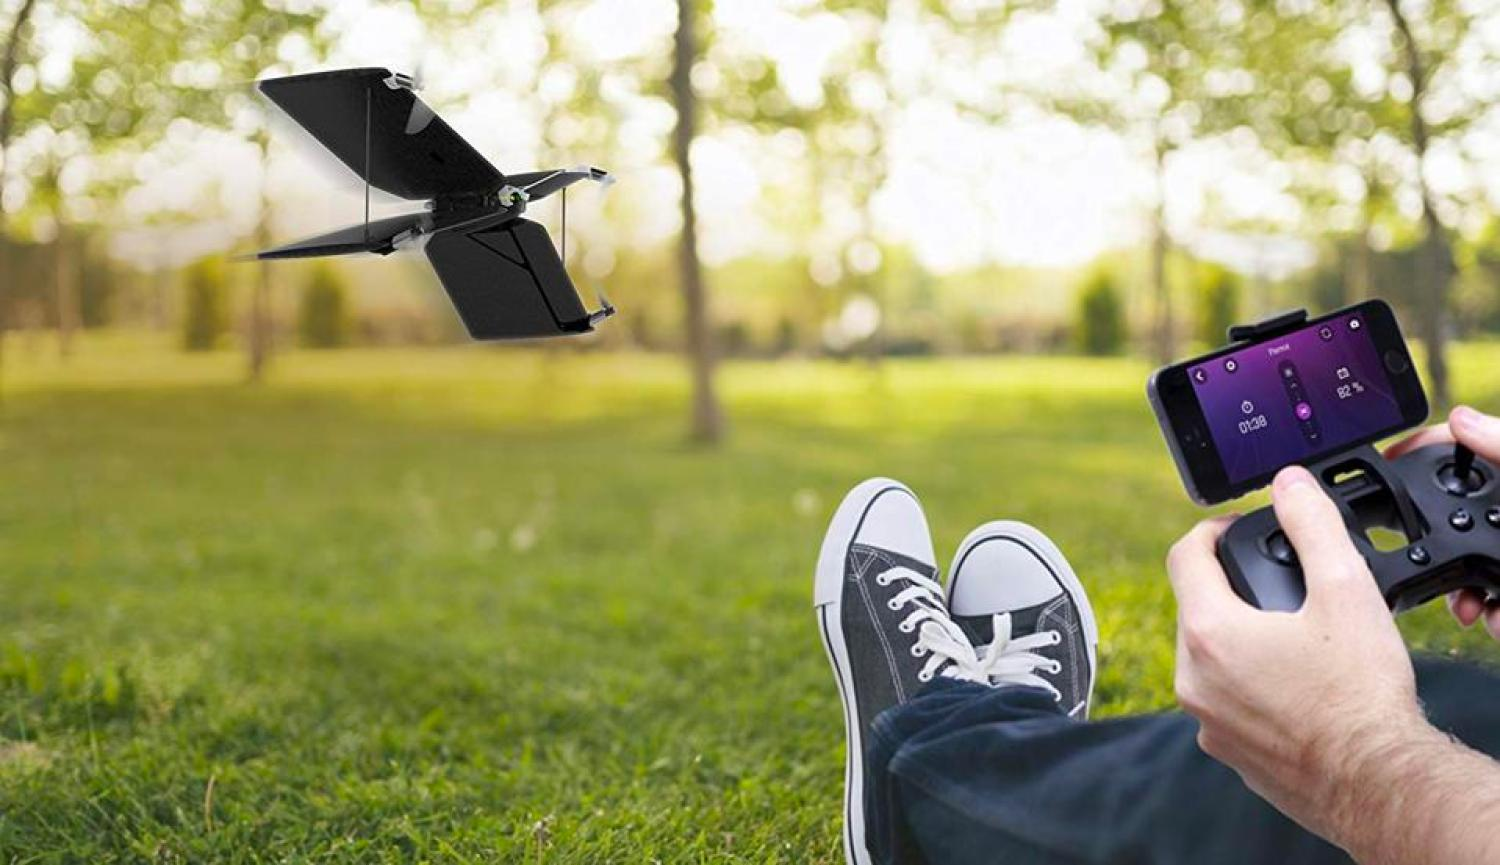 The Parrot Swing Quadcopter and Plane Minidrone.